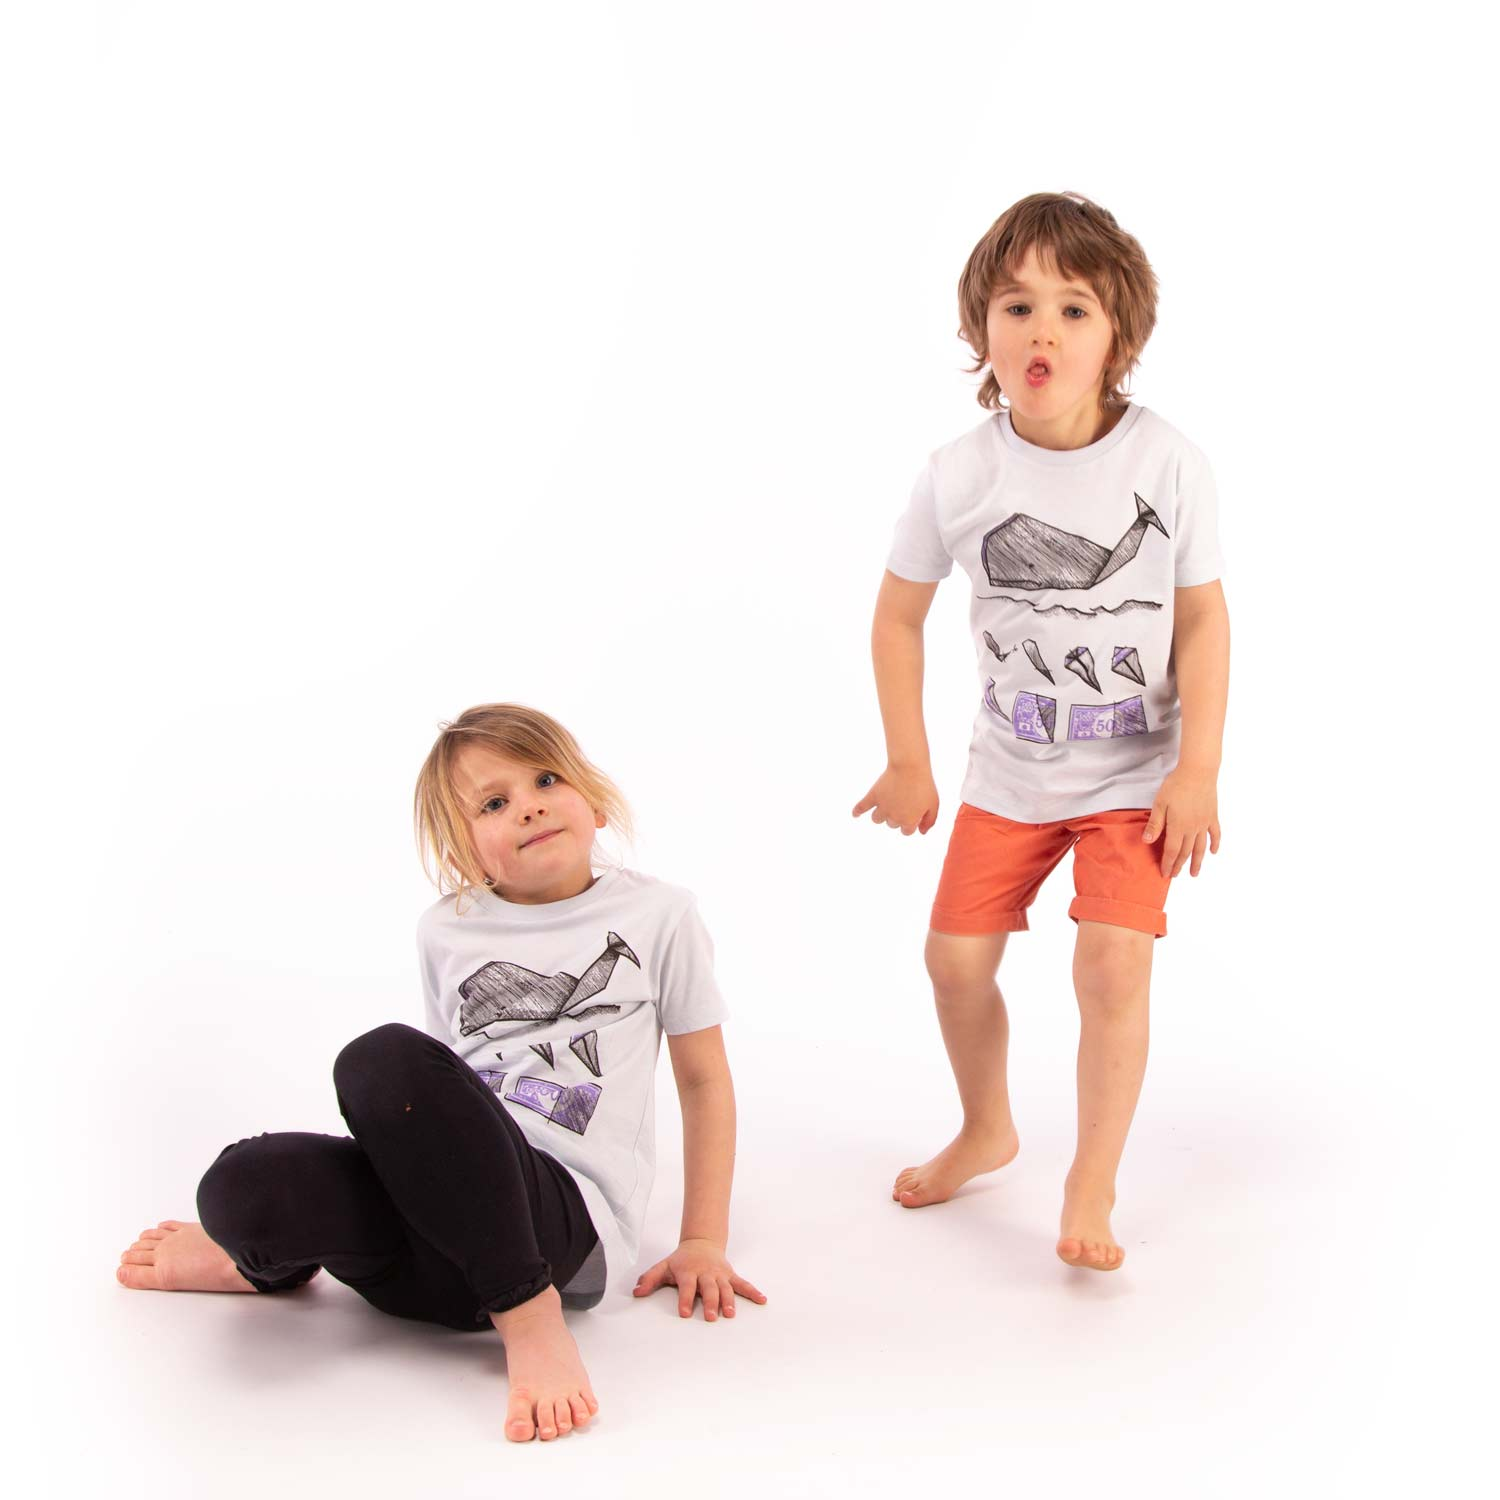 WHALE KIDS - Unisex Stop Commercial Whaling T-Shirt